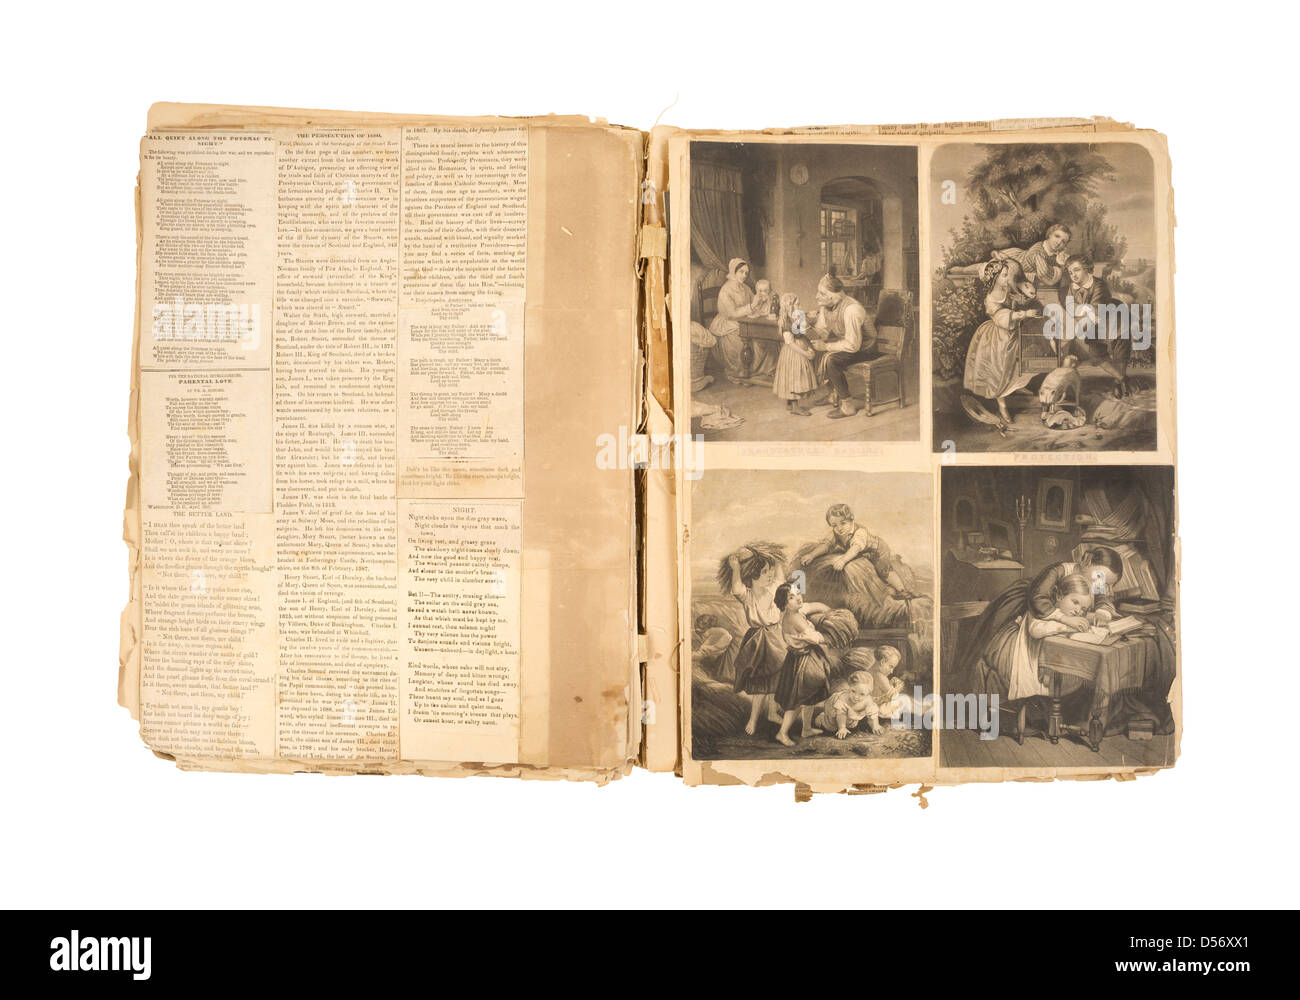 How to scrapbook newspaper clippings - A Vintage Scrapbook With Glued Newspaper Clippings And 1800s Illustrations On A White Background